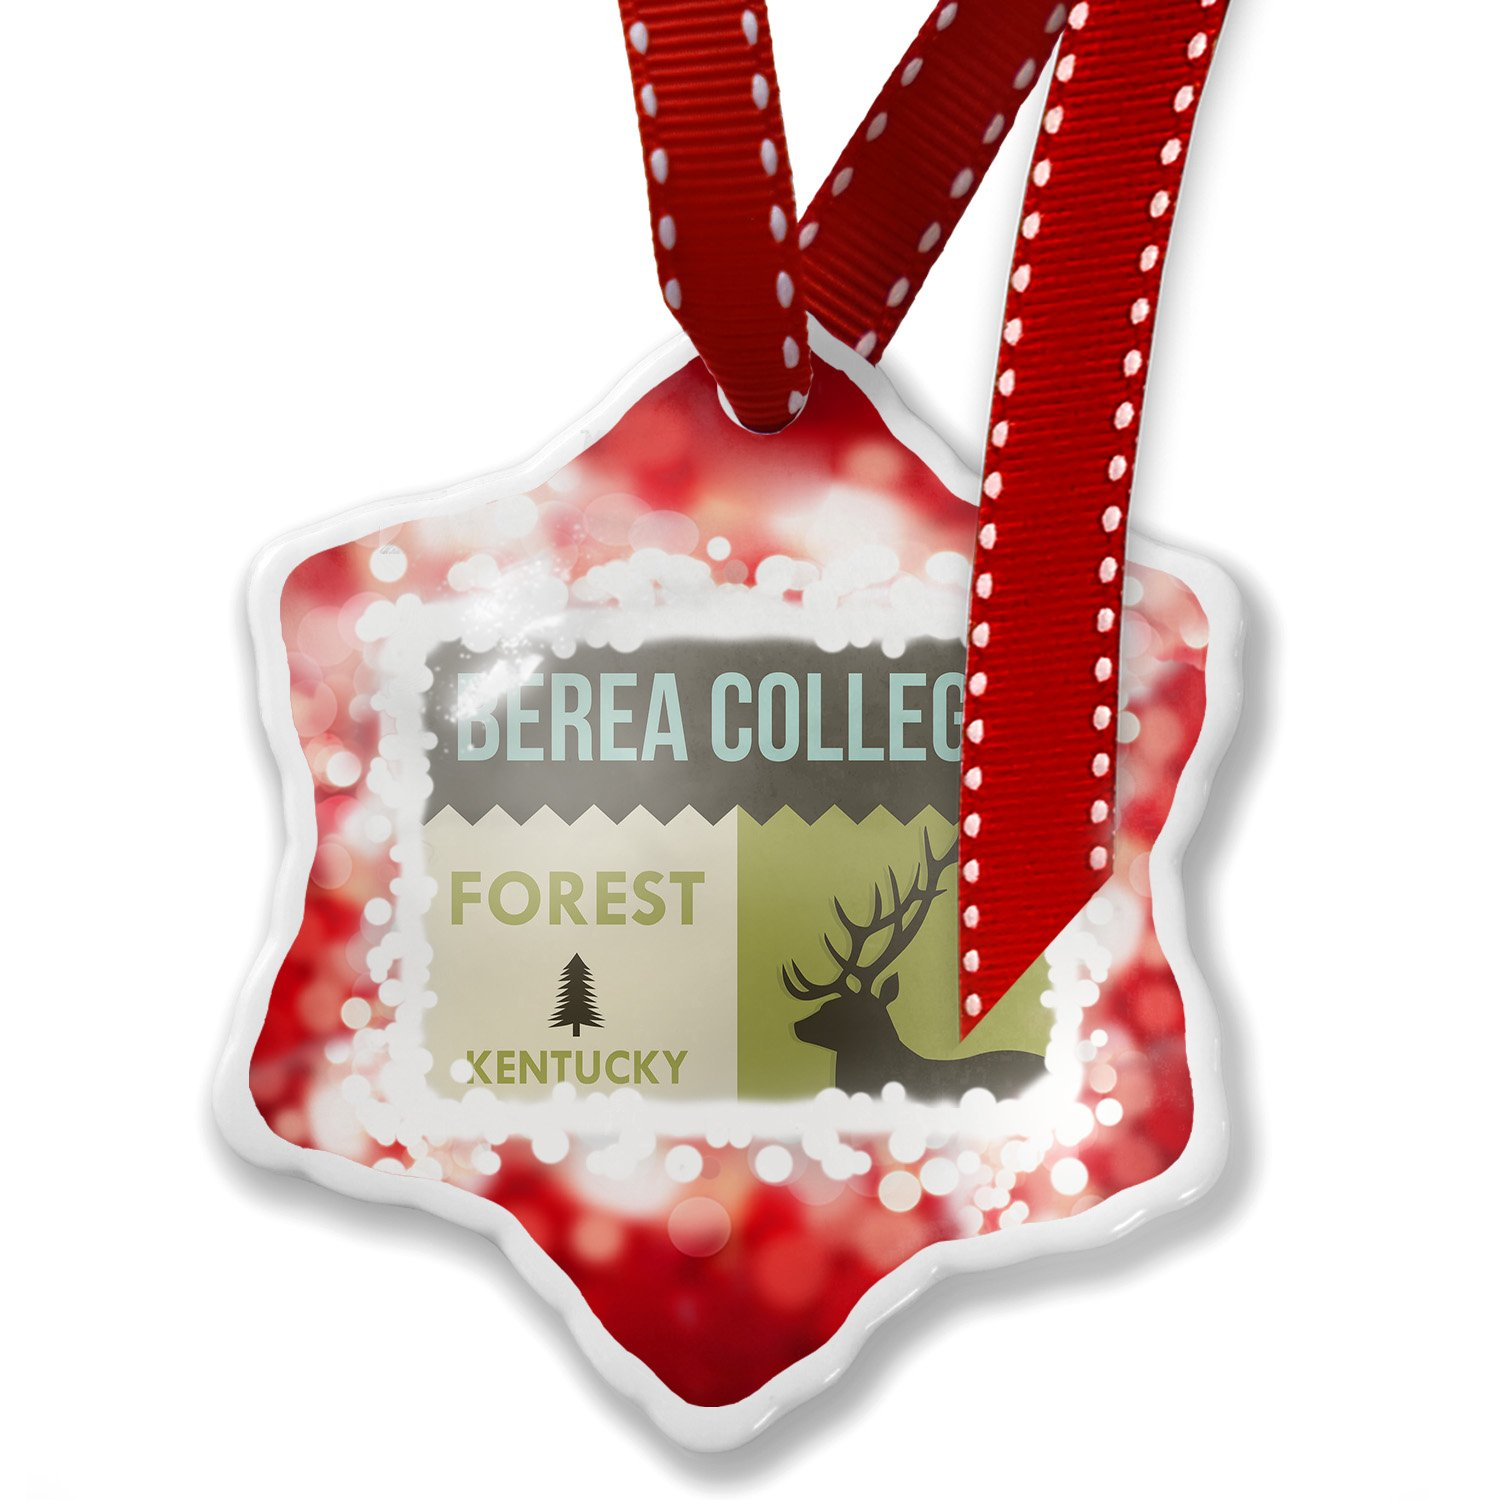 Christmas Ornament National US Forest Berea College Forest, red - Neonblond